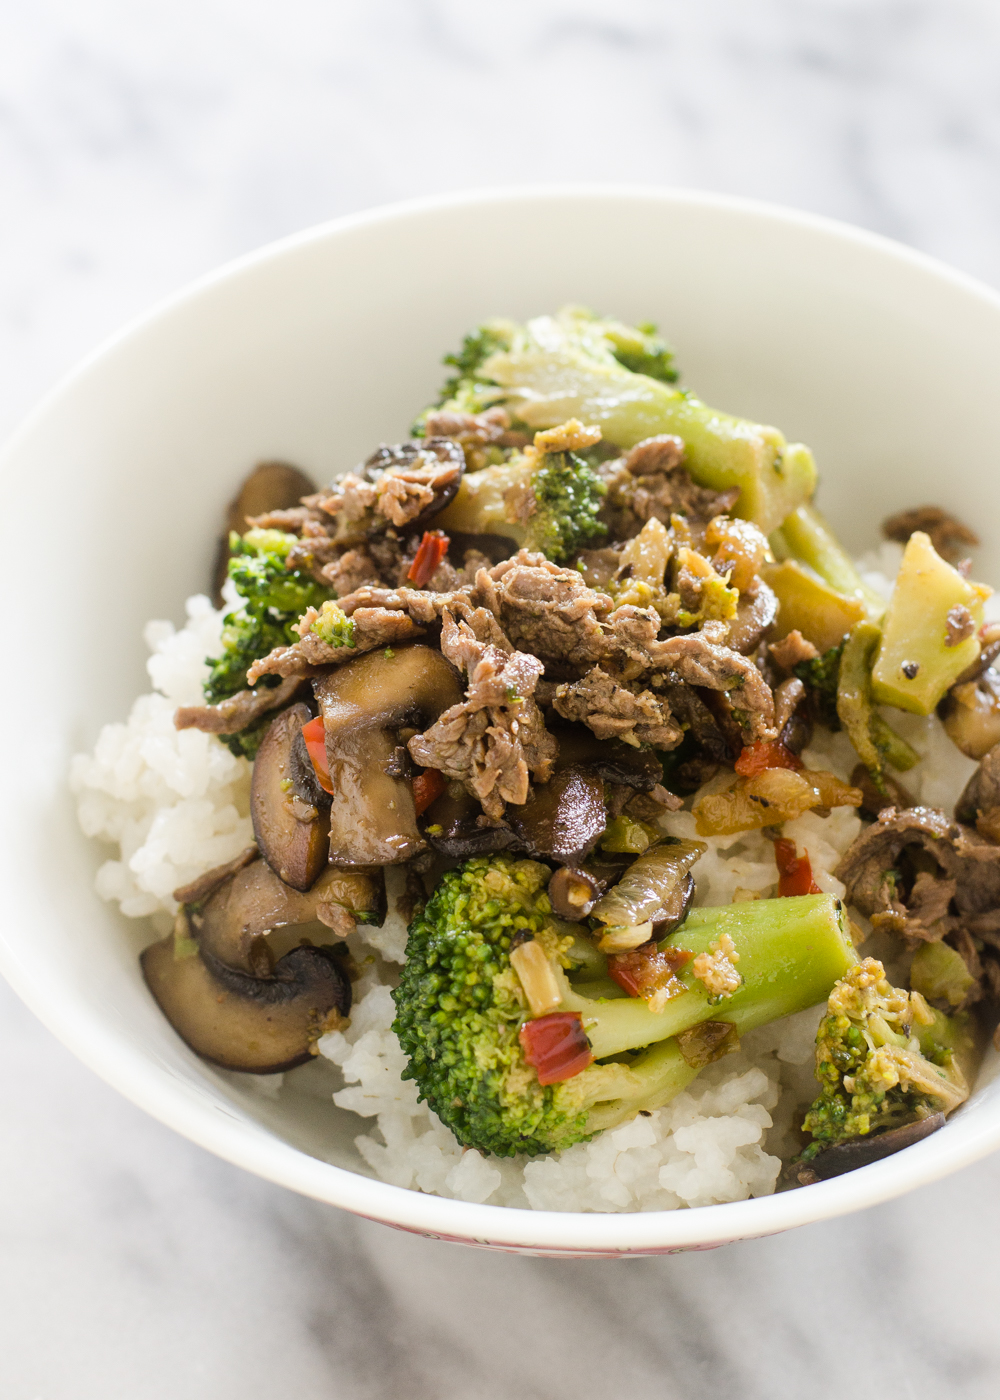 Butcher Box Review Meal 2 - Stir-Fry